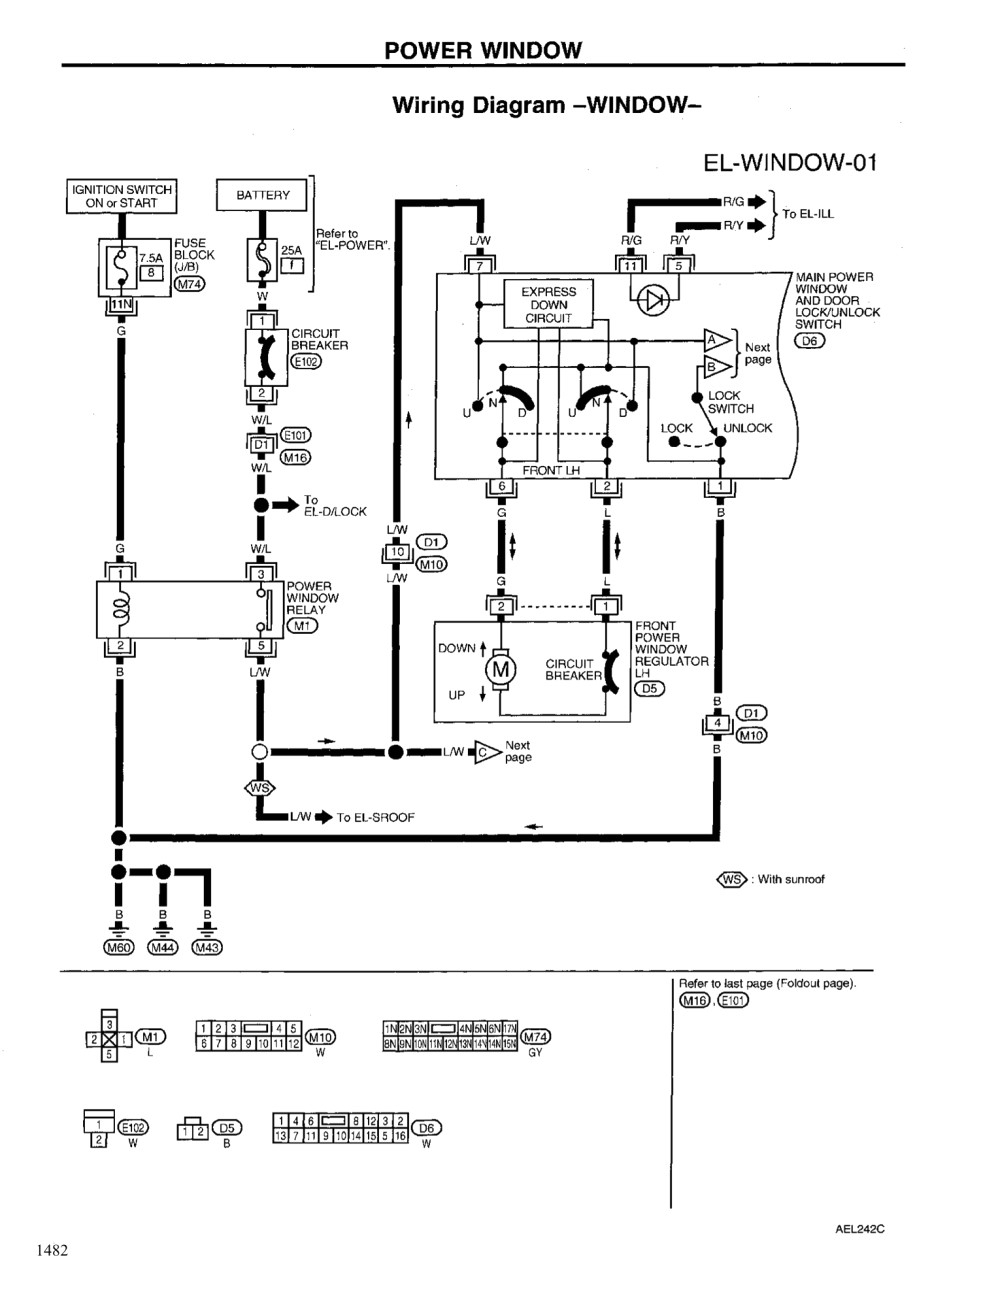 nissan altima wiring diagram Download-nissan altima wiring diagram Download Nissan Altima Wiring Diagrams 20 r DOWNLOAD Wiring Diagram Detail Name nissan altima 14-c